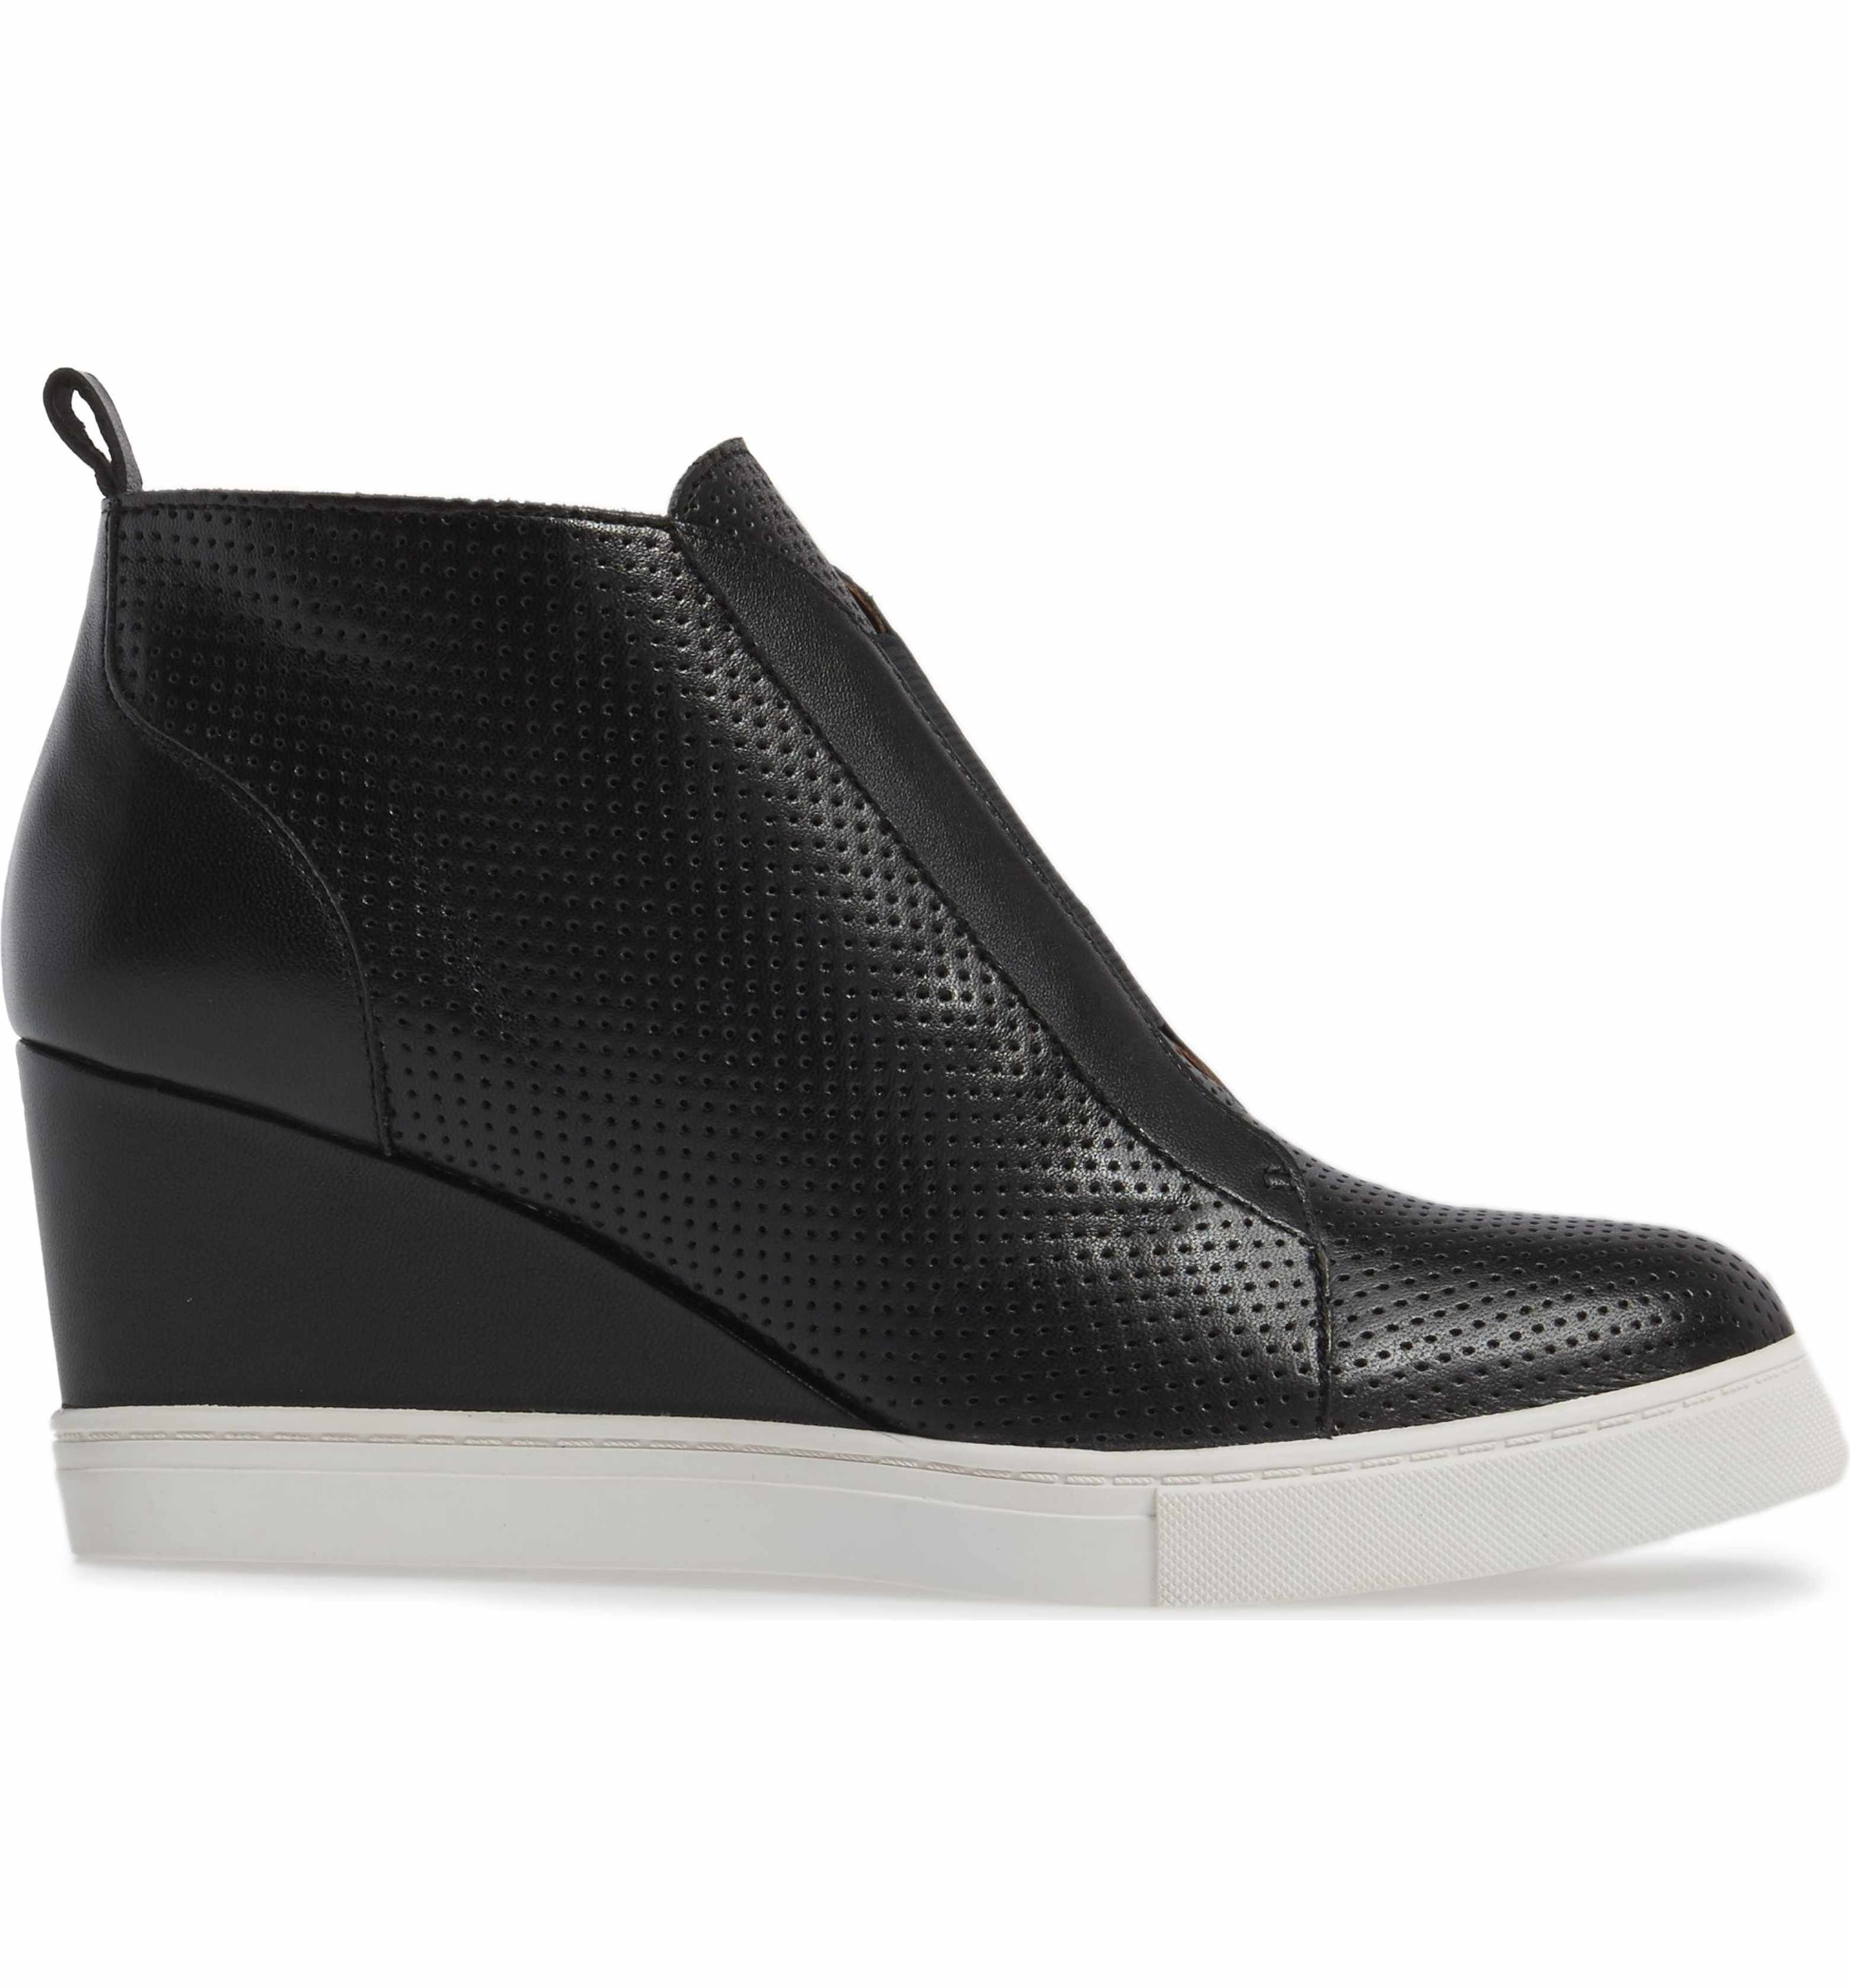 247cfc16d4afe Main Image - Linea Paolo 'Felicia' Wedge Bootie (Women) | Style ...